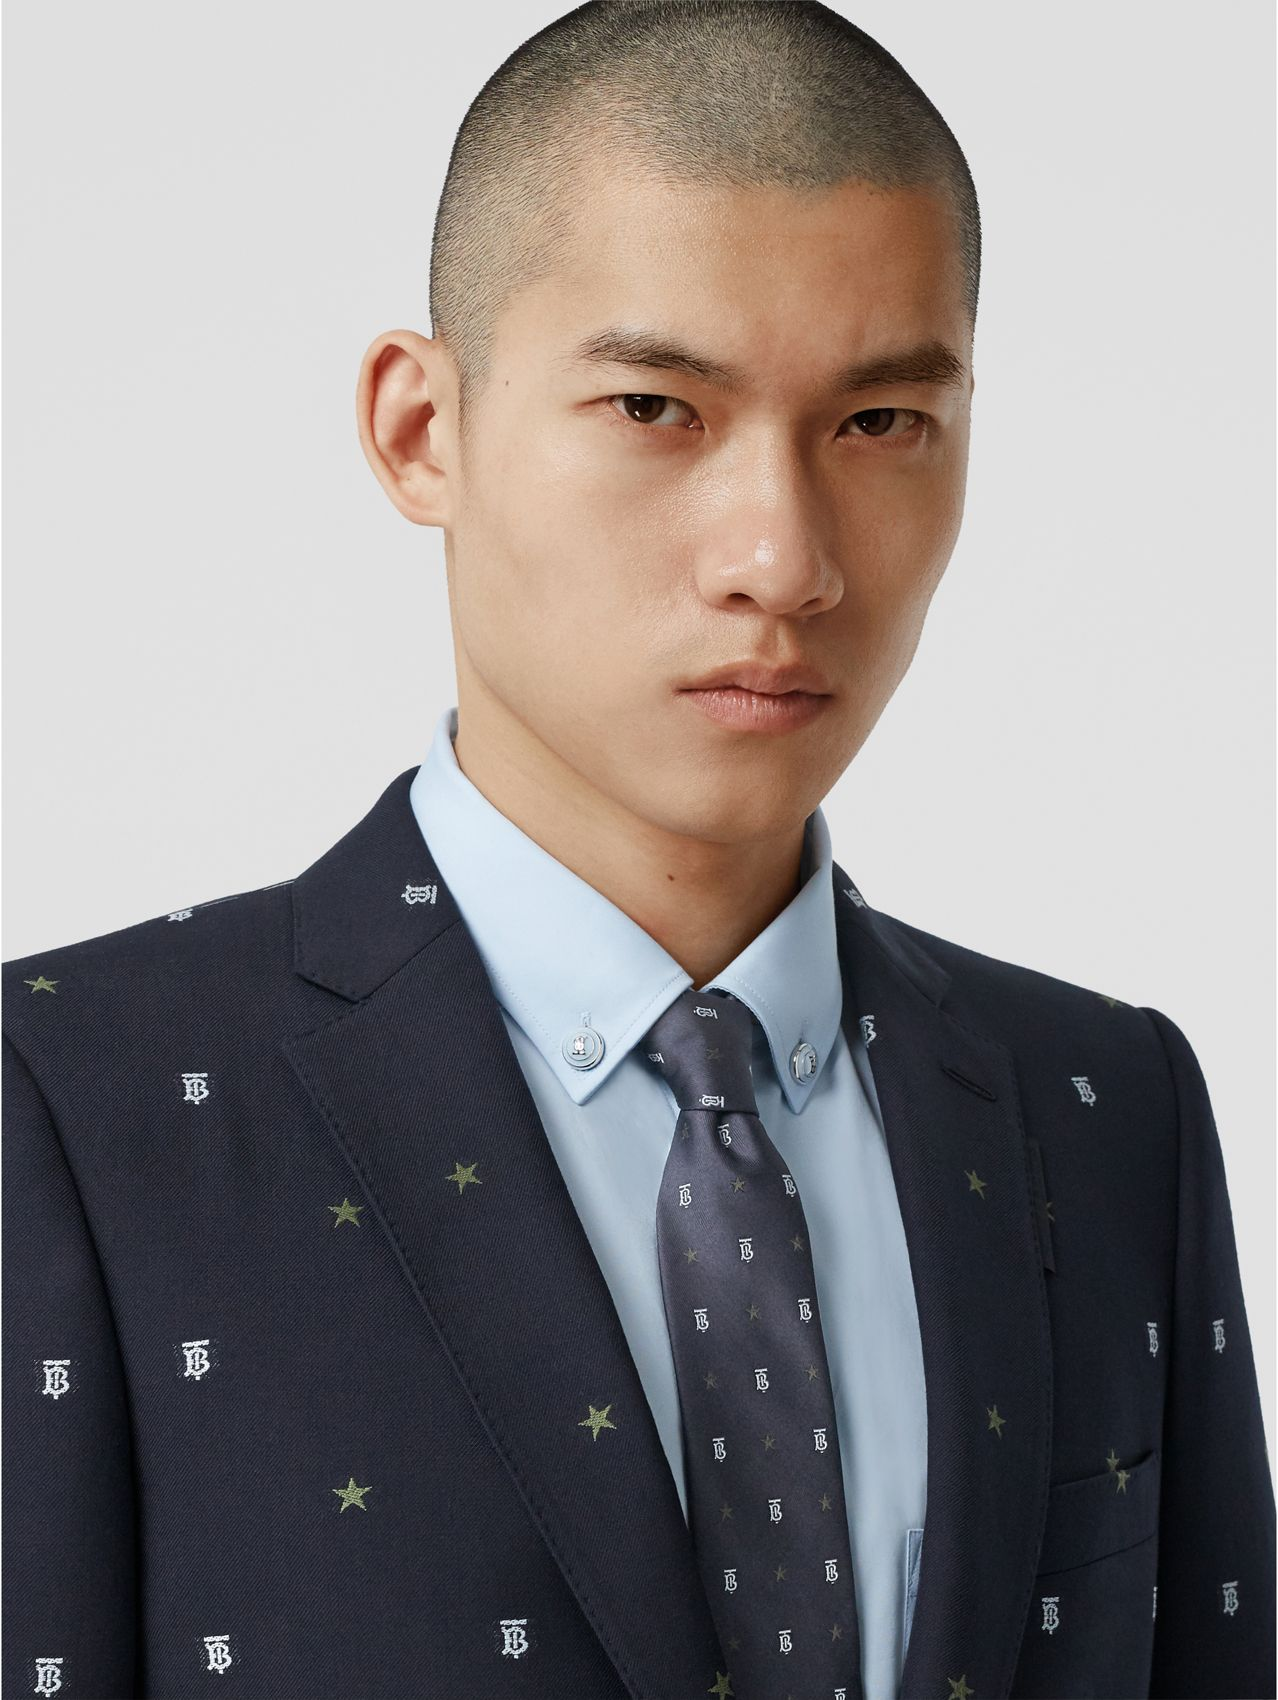 Classic Cut Monogram and Star Motif Silk Tie (Dark Navy)